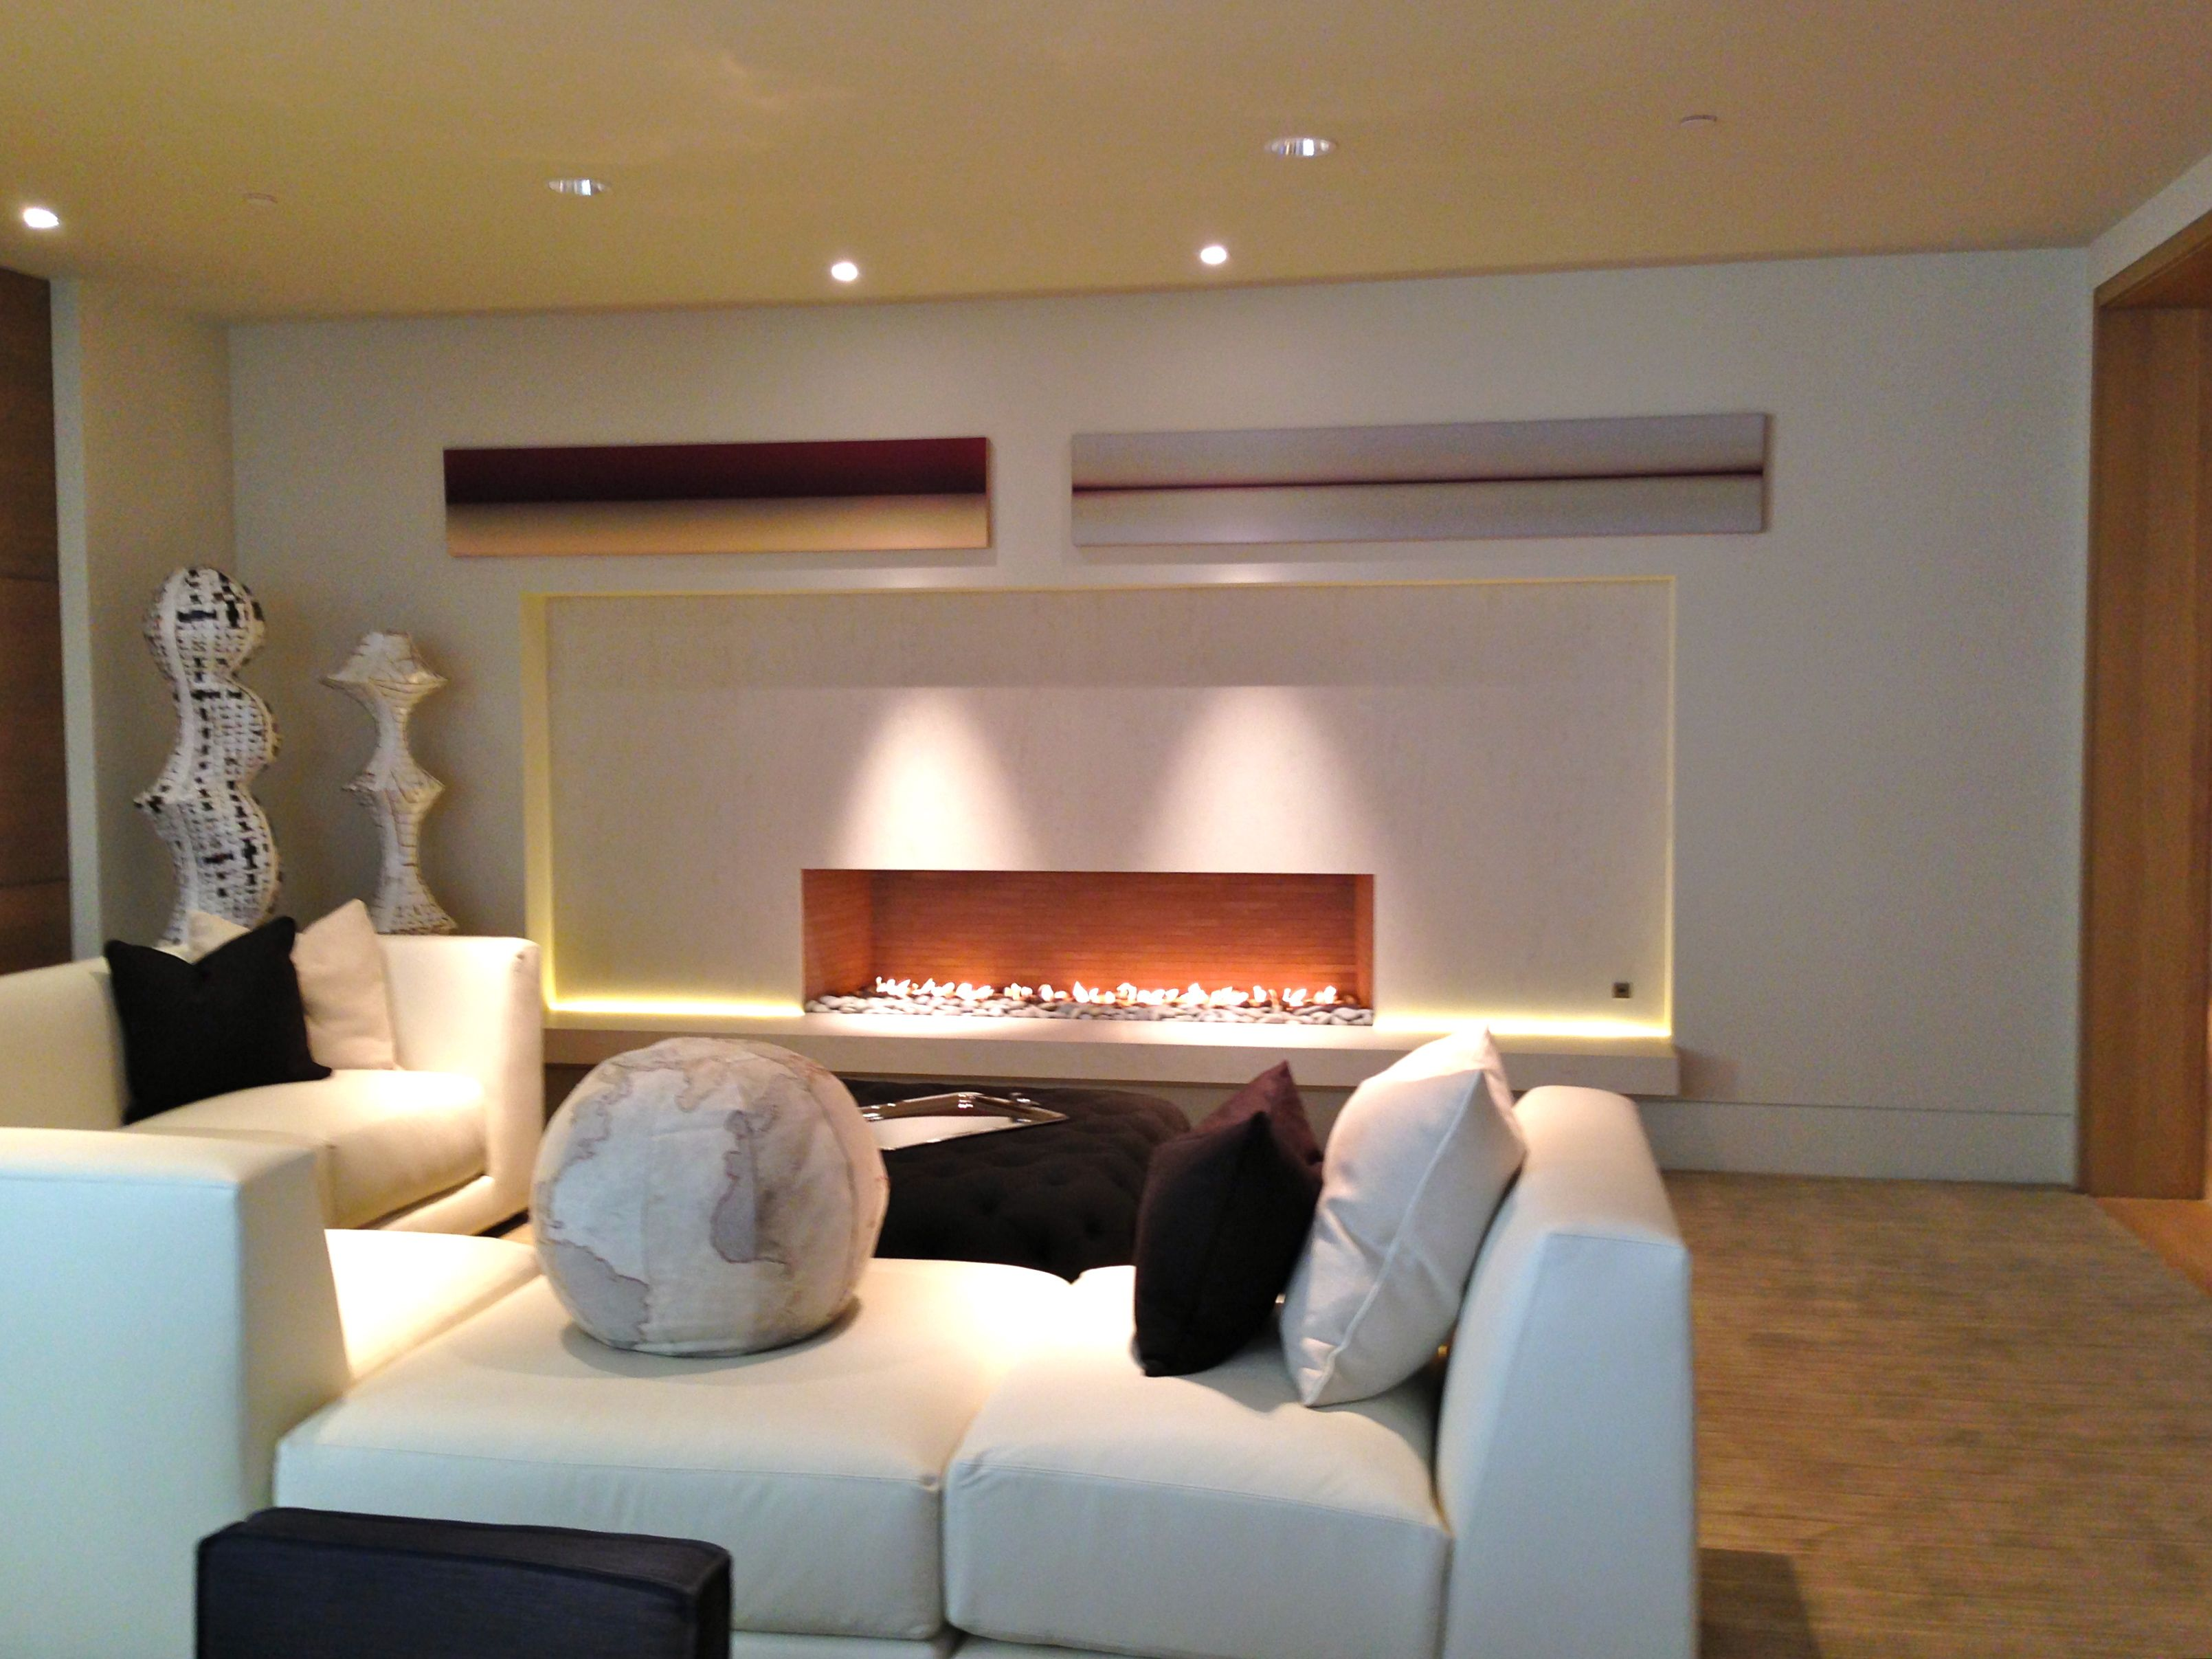 8 ft long linear open living room fireplace